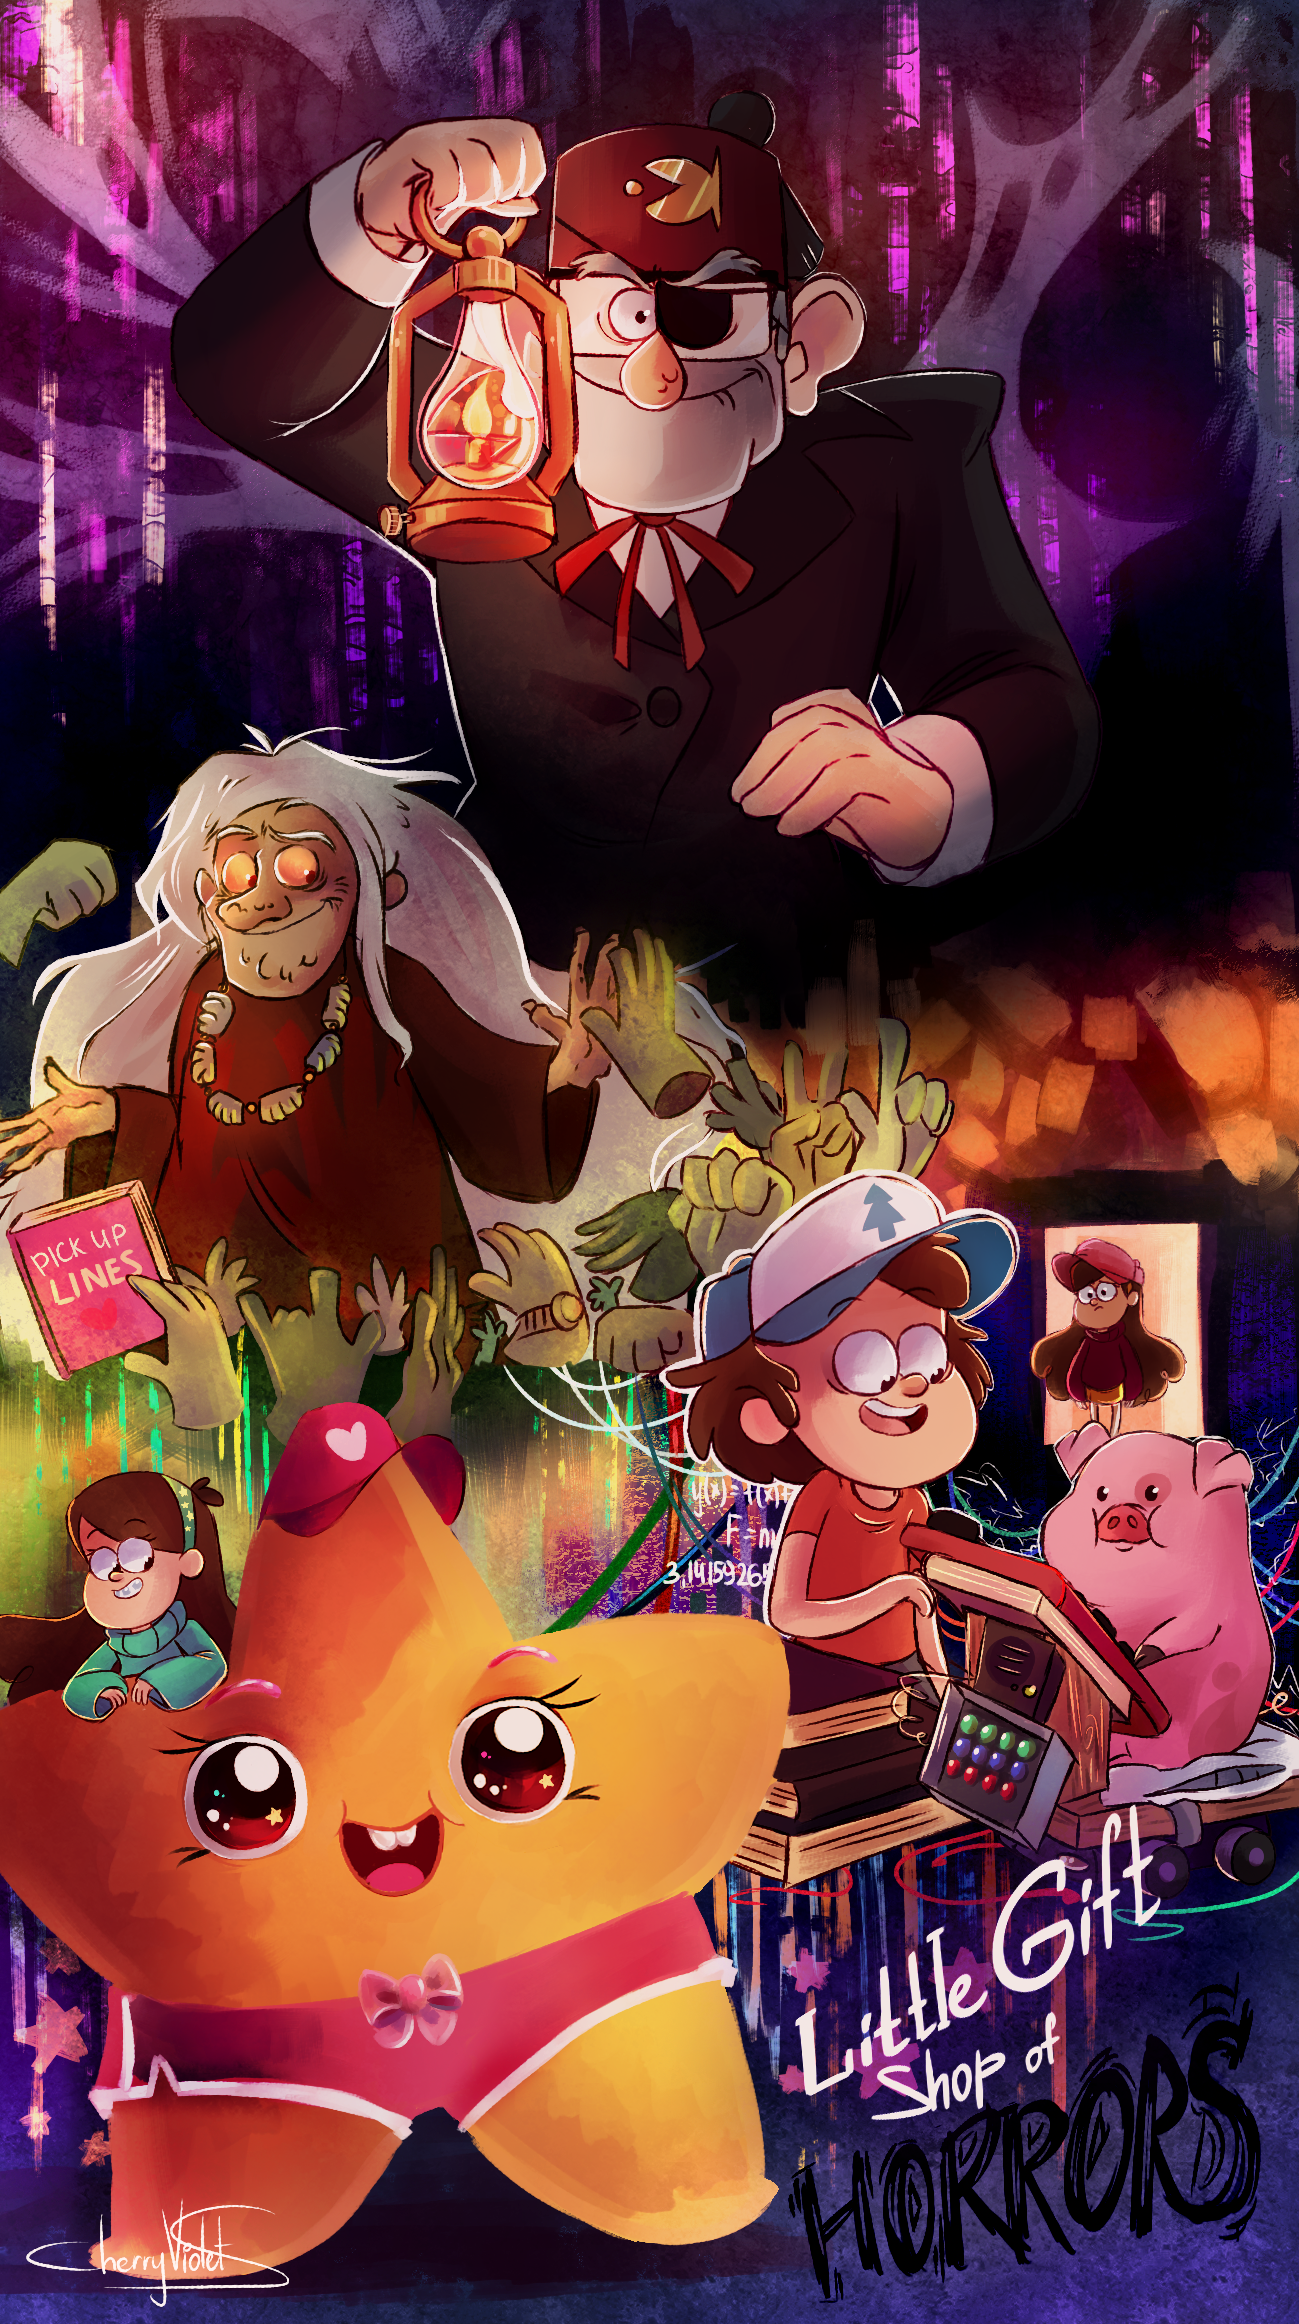 Little Gift Shop of Horrors by CherryVioletS on DeviantArt